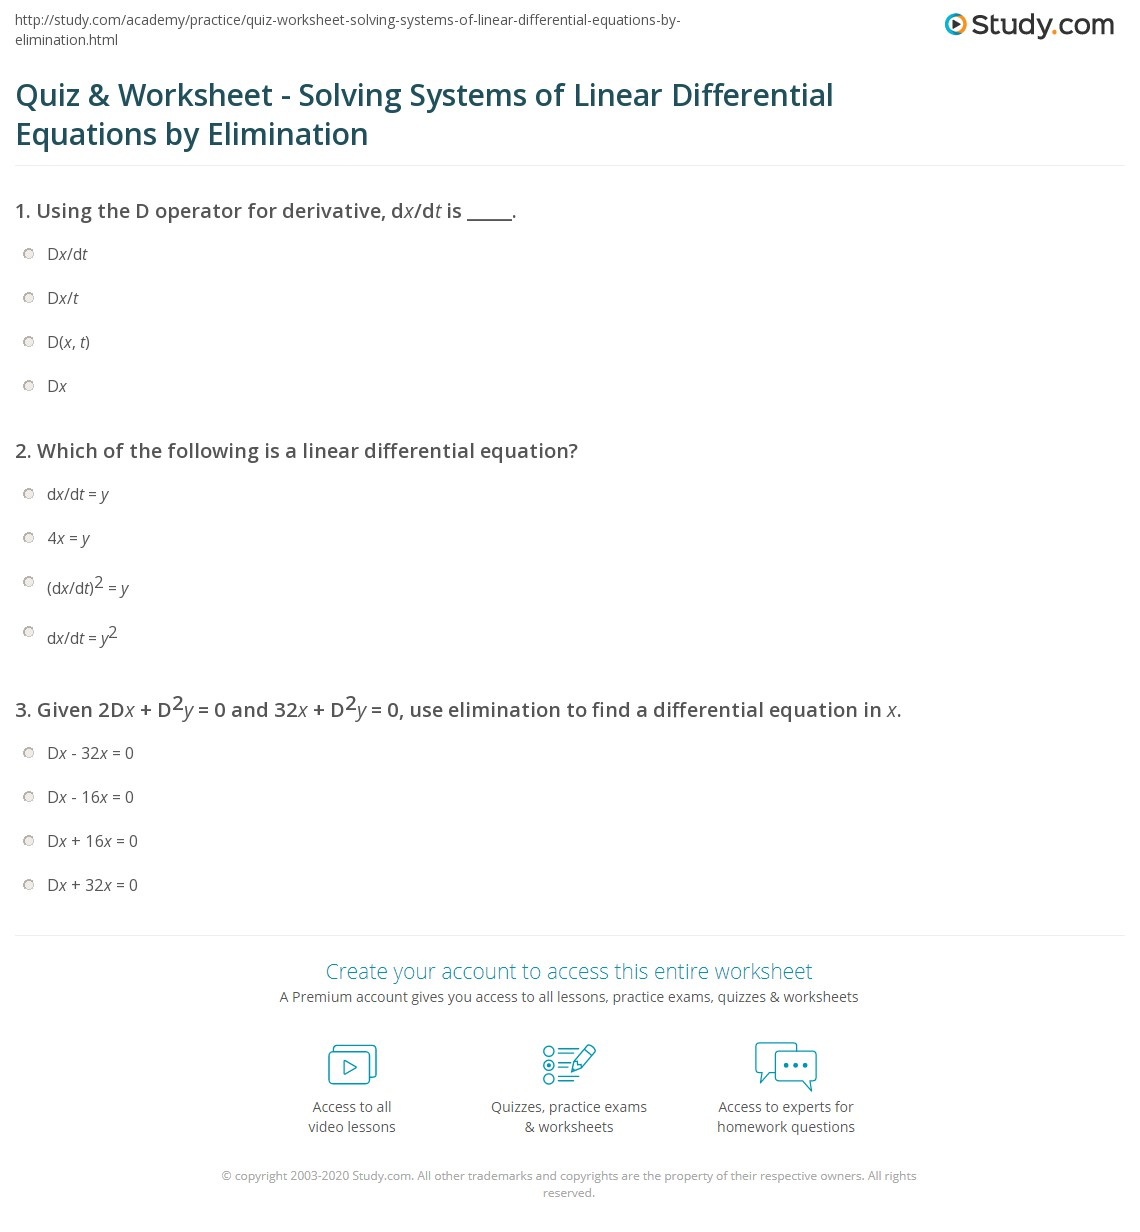 Quiz Worksheet Solving Systems Of Linear Differential Equations